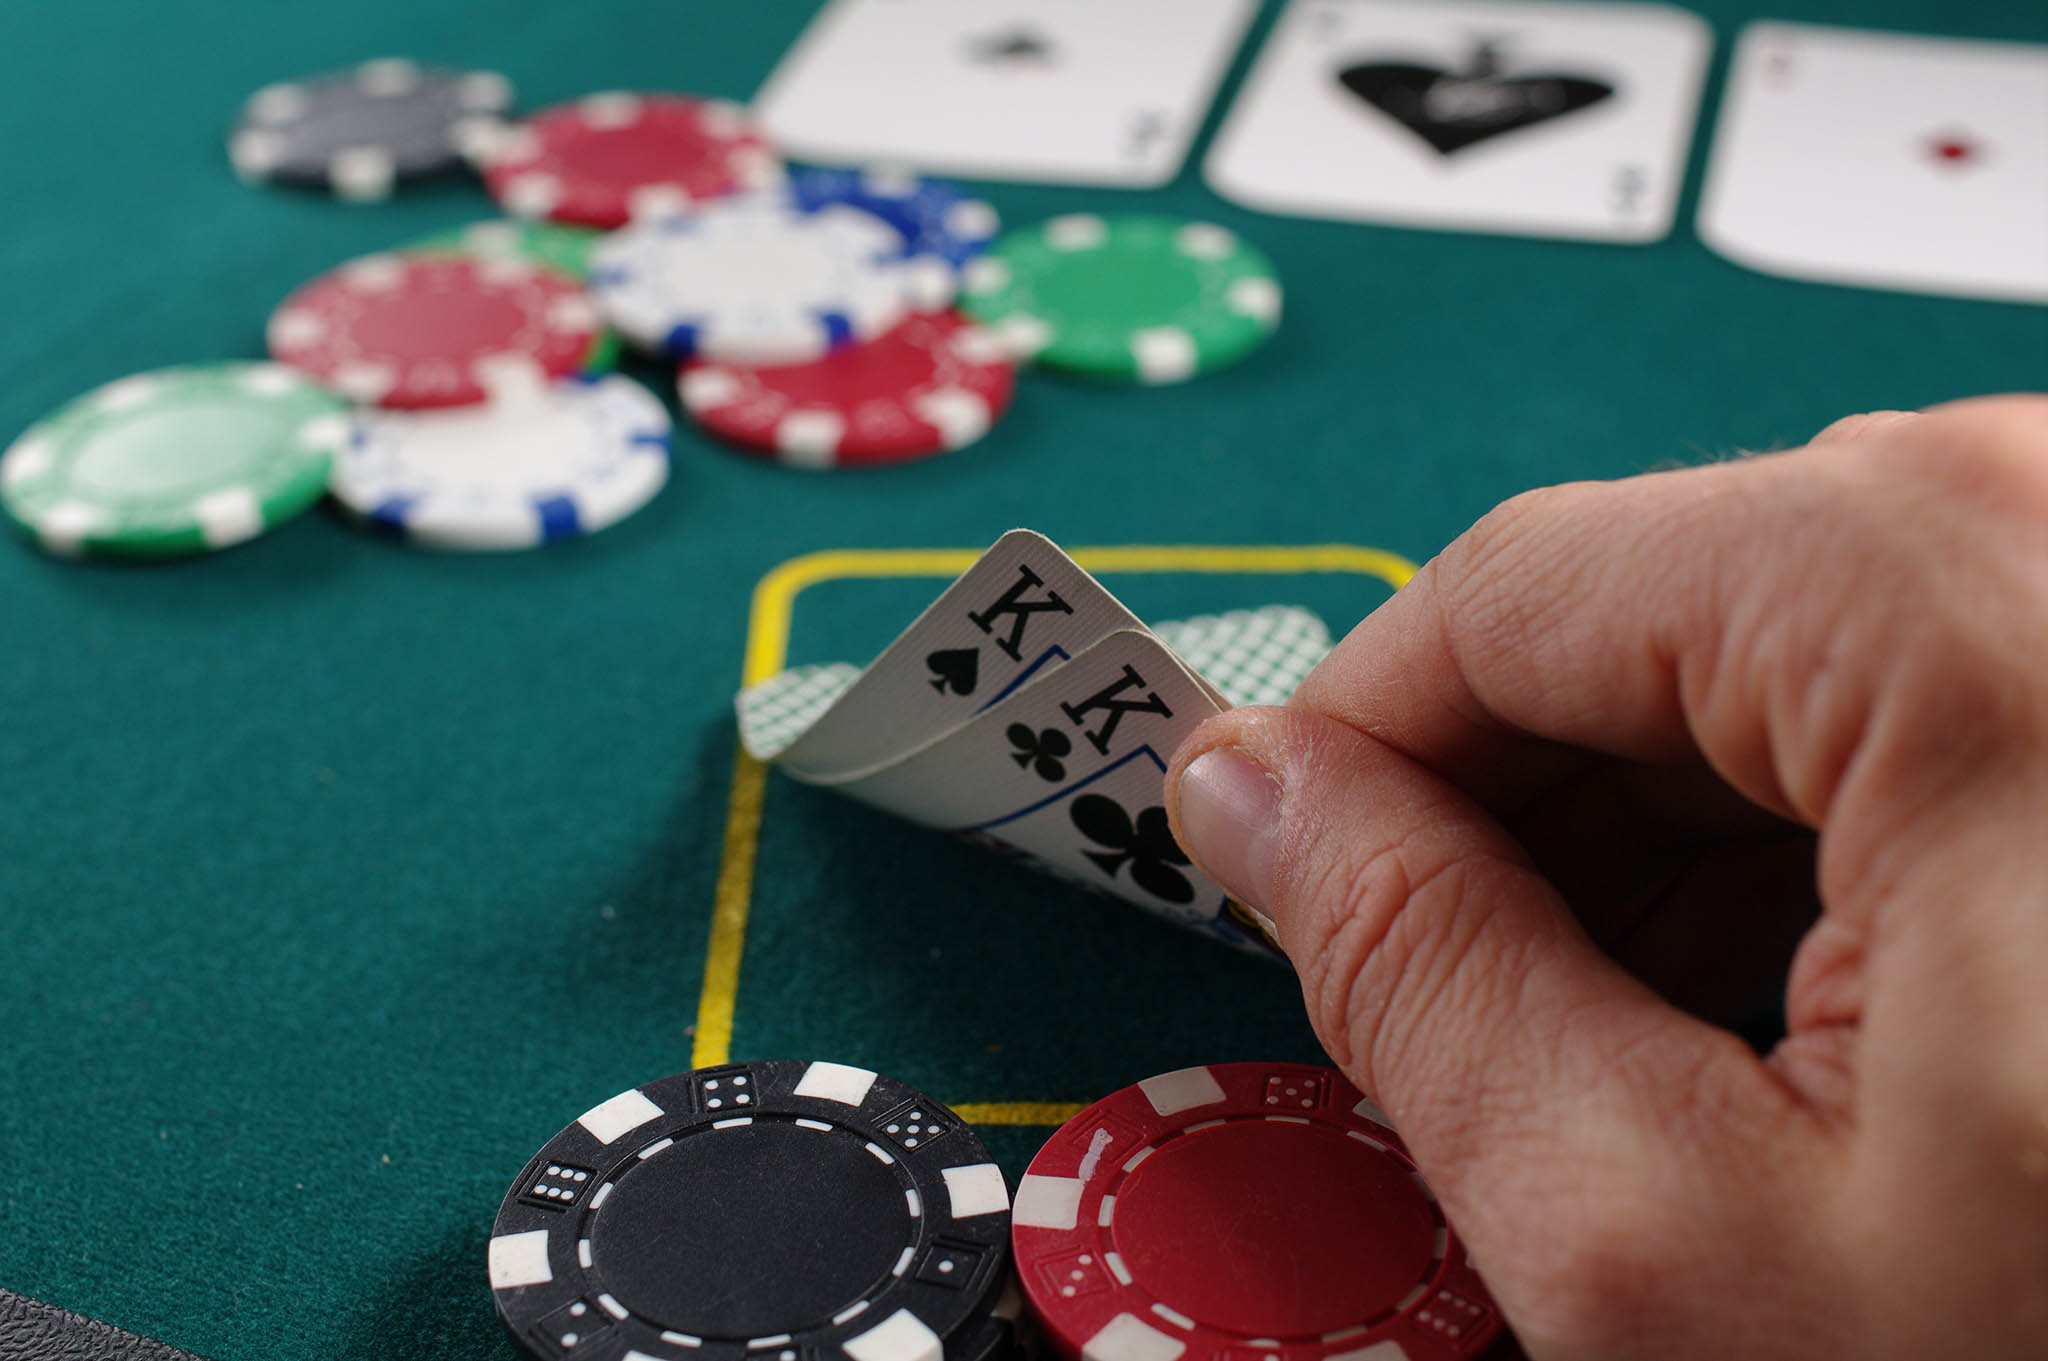 APAT Deepen Grassroots Reach With Pub Poker Acquisition